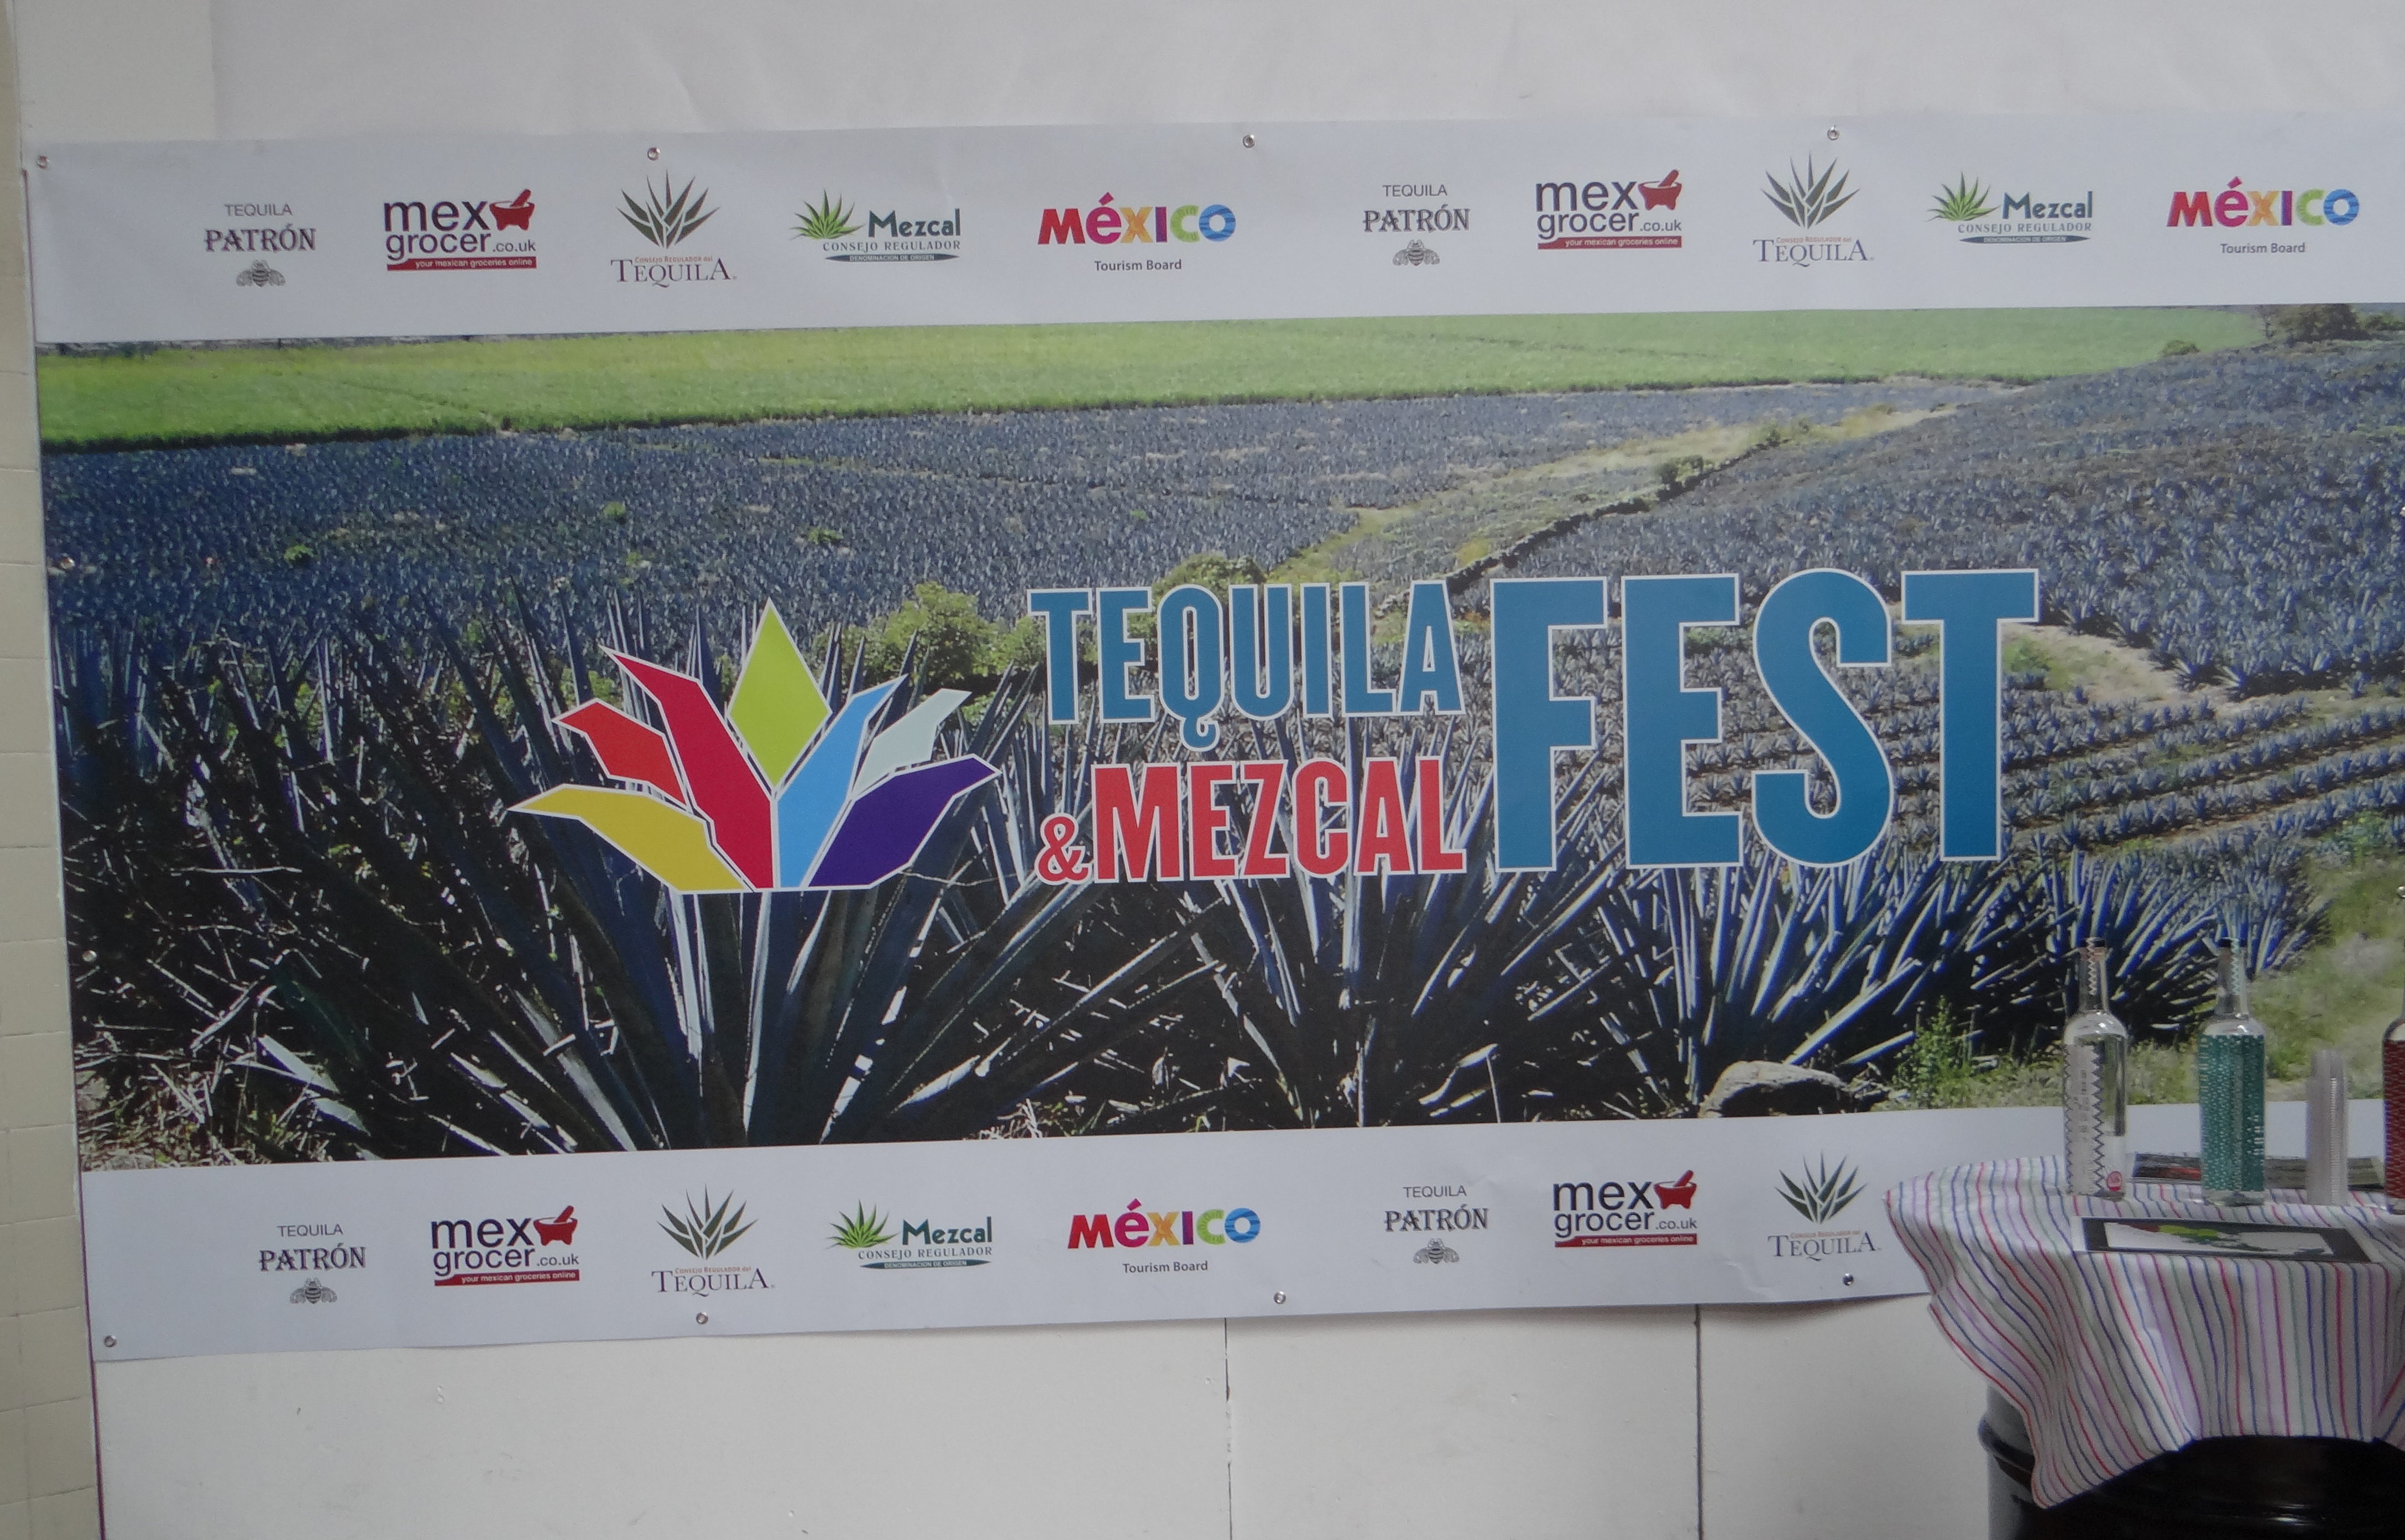 Tequila and Mezcal Fest, Seminars and New Products